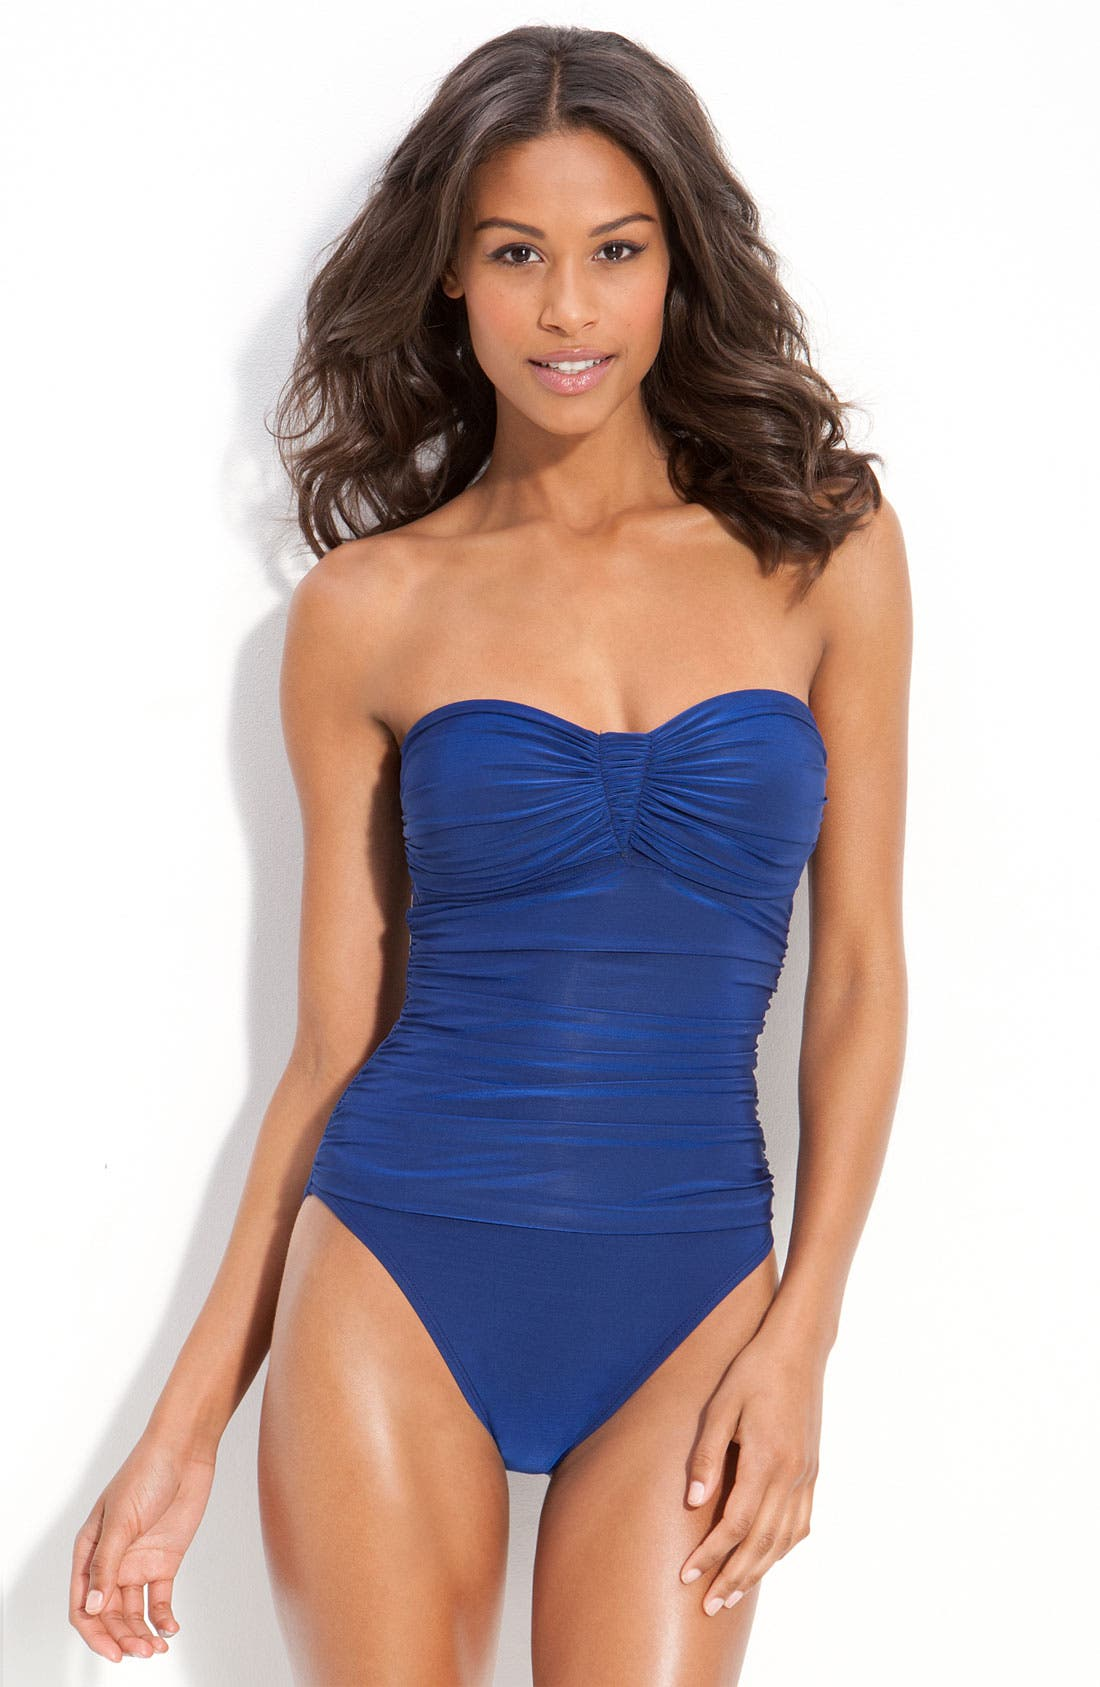 Alternate Image 1 Selected - La Blanca 'Glimmer Girl' Shirred One Piece Bandeau Swimsuit